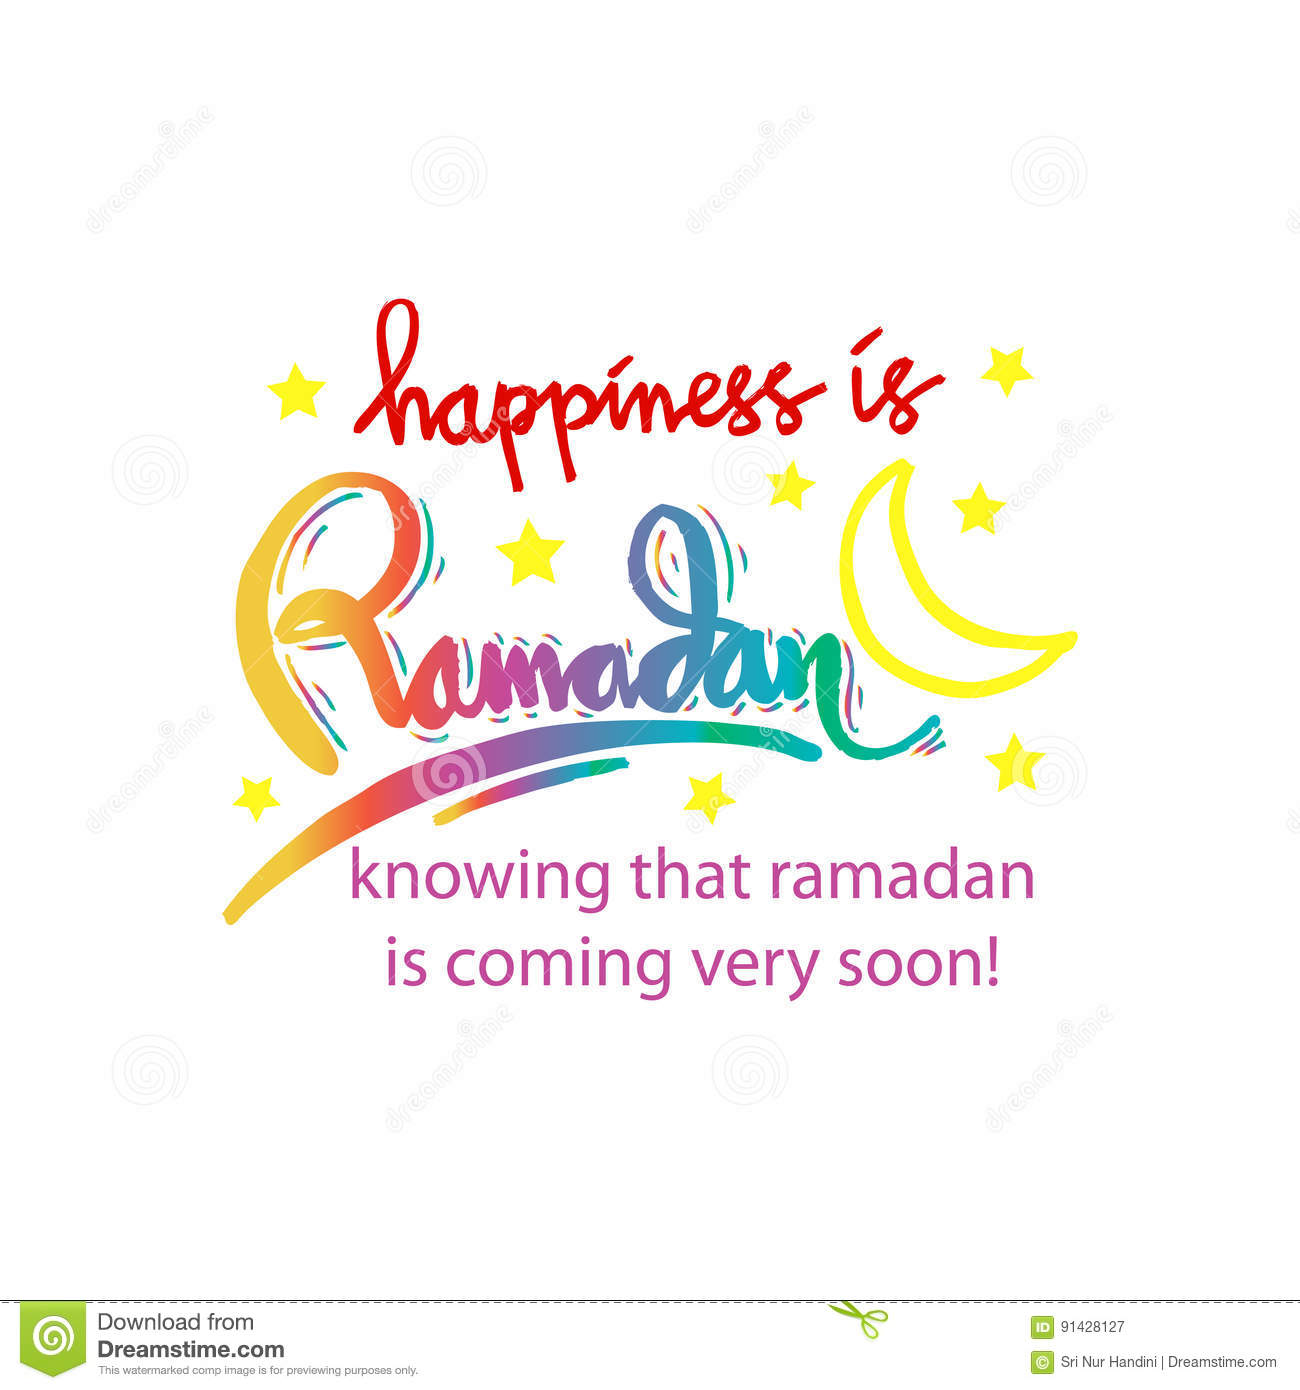 Happiness Is Ramadan Knowing That Ramadan Is Coming Very Soon Celebration Month Royalty Free Illustration